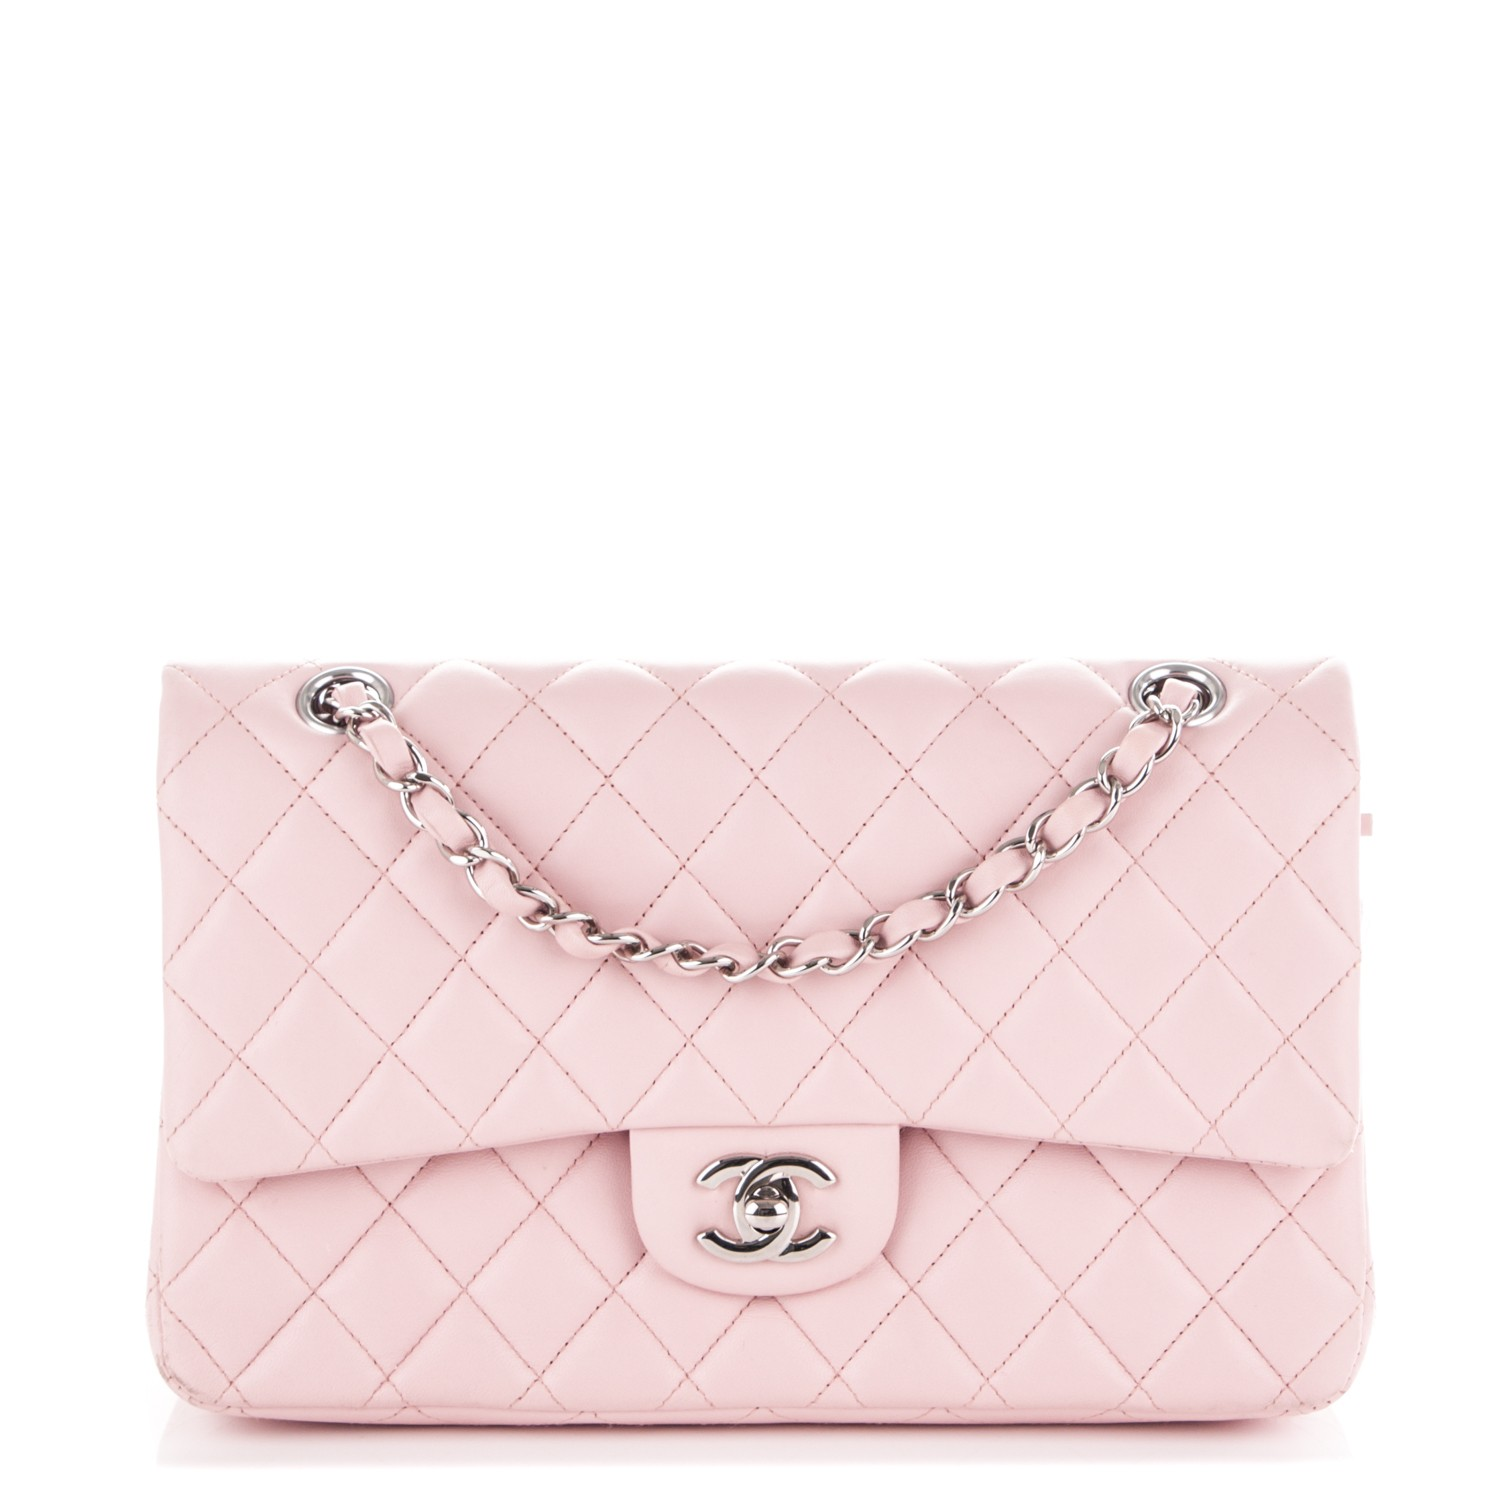 e942ccb29c44 CHANEL Lambskin Quilted Medium Double Flap Light Pink 166209